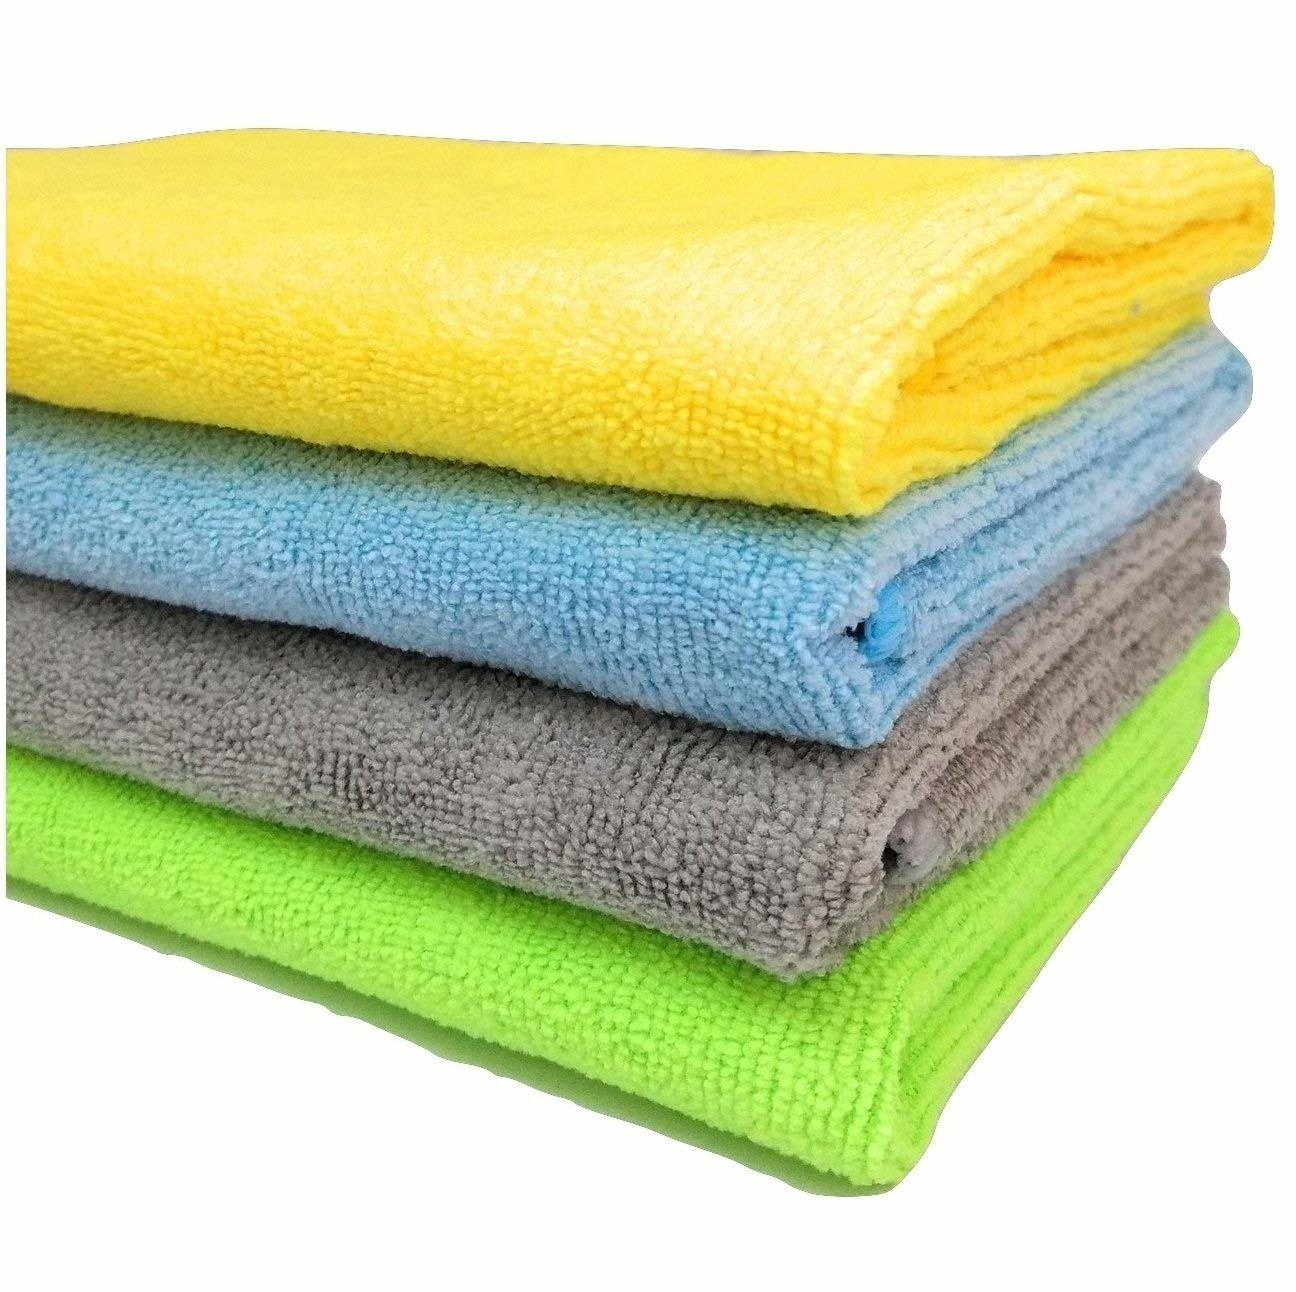 A pack of cleaning cloths